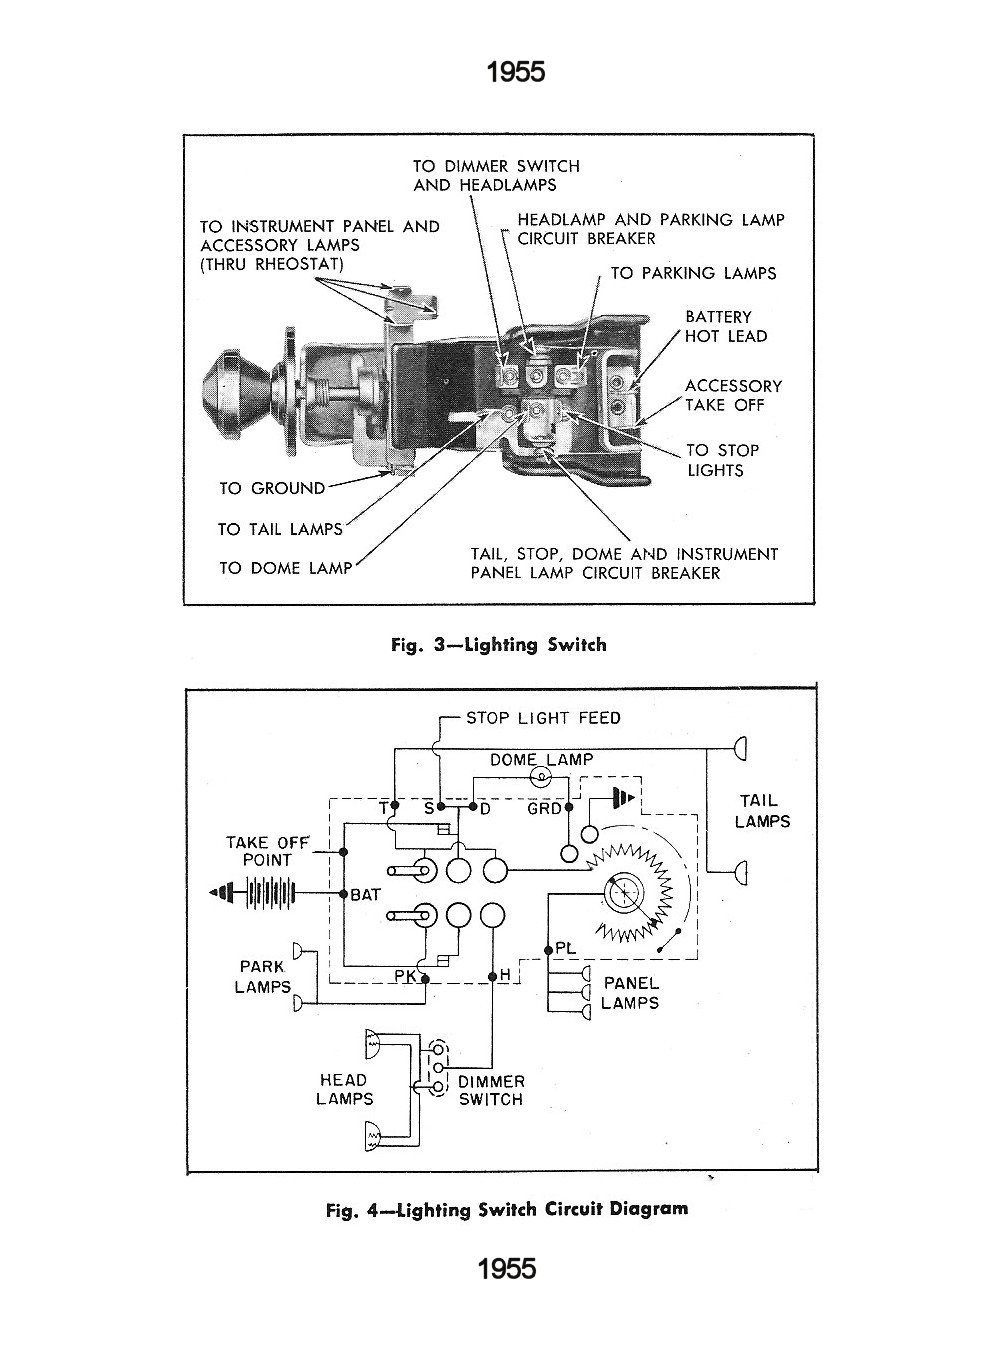 55csm1204a 1955 chevy wiring diagram 1955 pontiac wiring diagram \u2022 free chevrolet headlight switch wiring diagram at alyssarenee.co